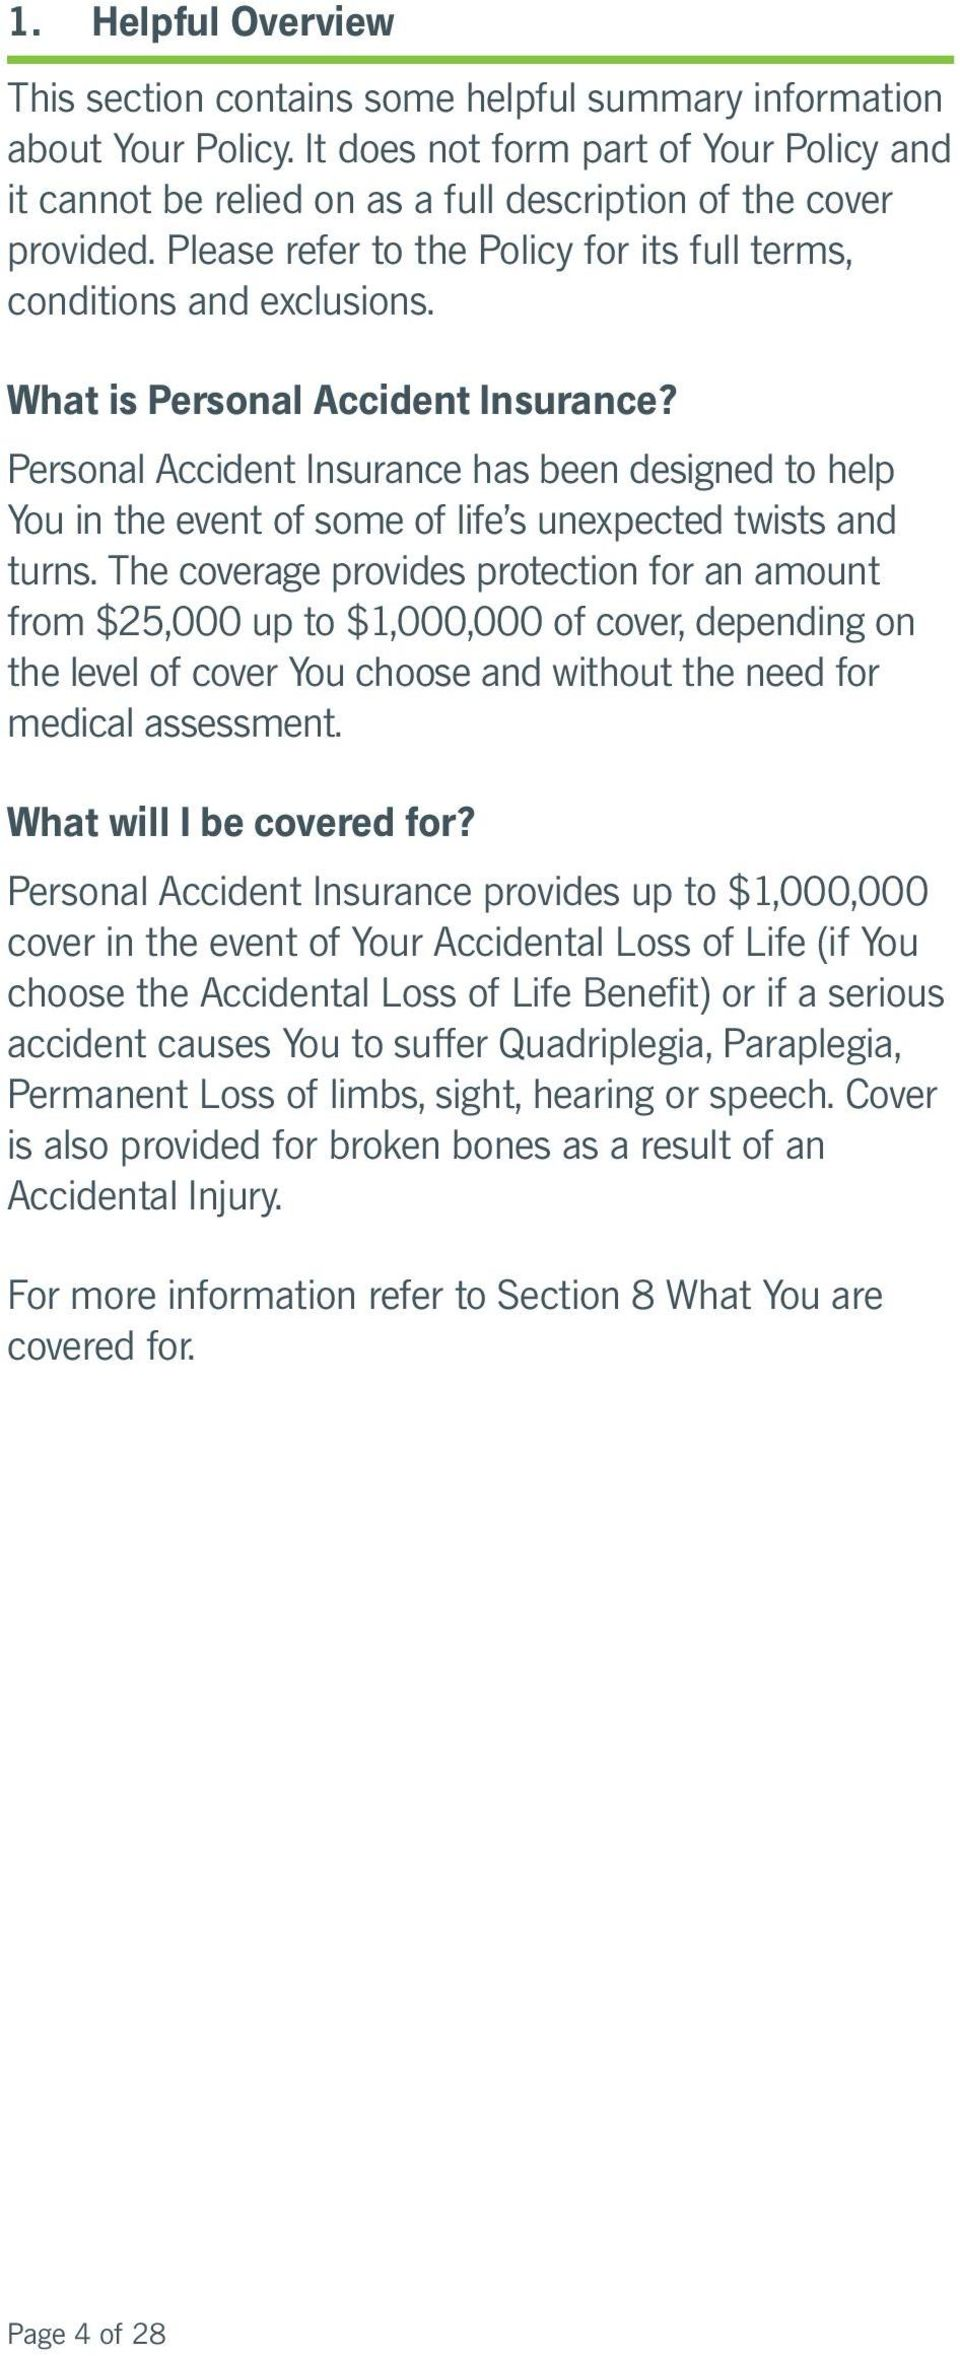 What is Personal Accident Insurance? Personal Accident Insurance has been designed to help You in the event of some of life s unexpected twists and turns.